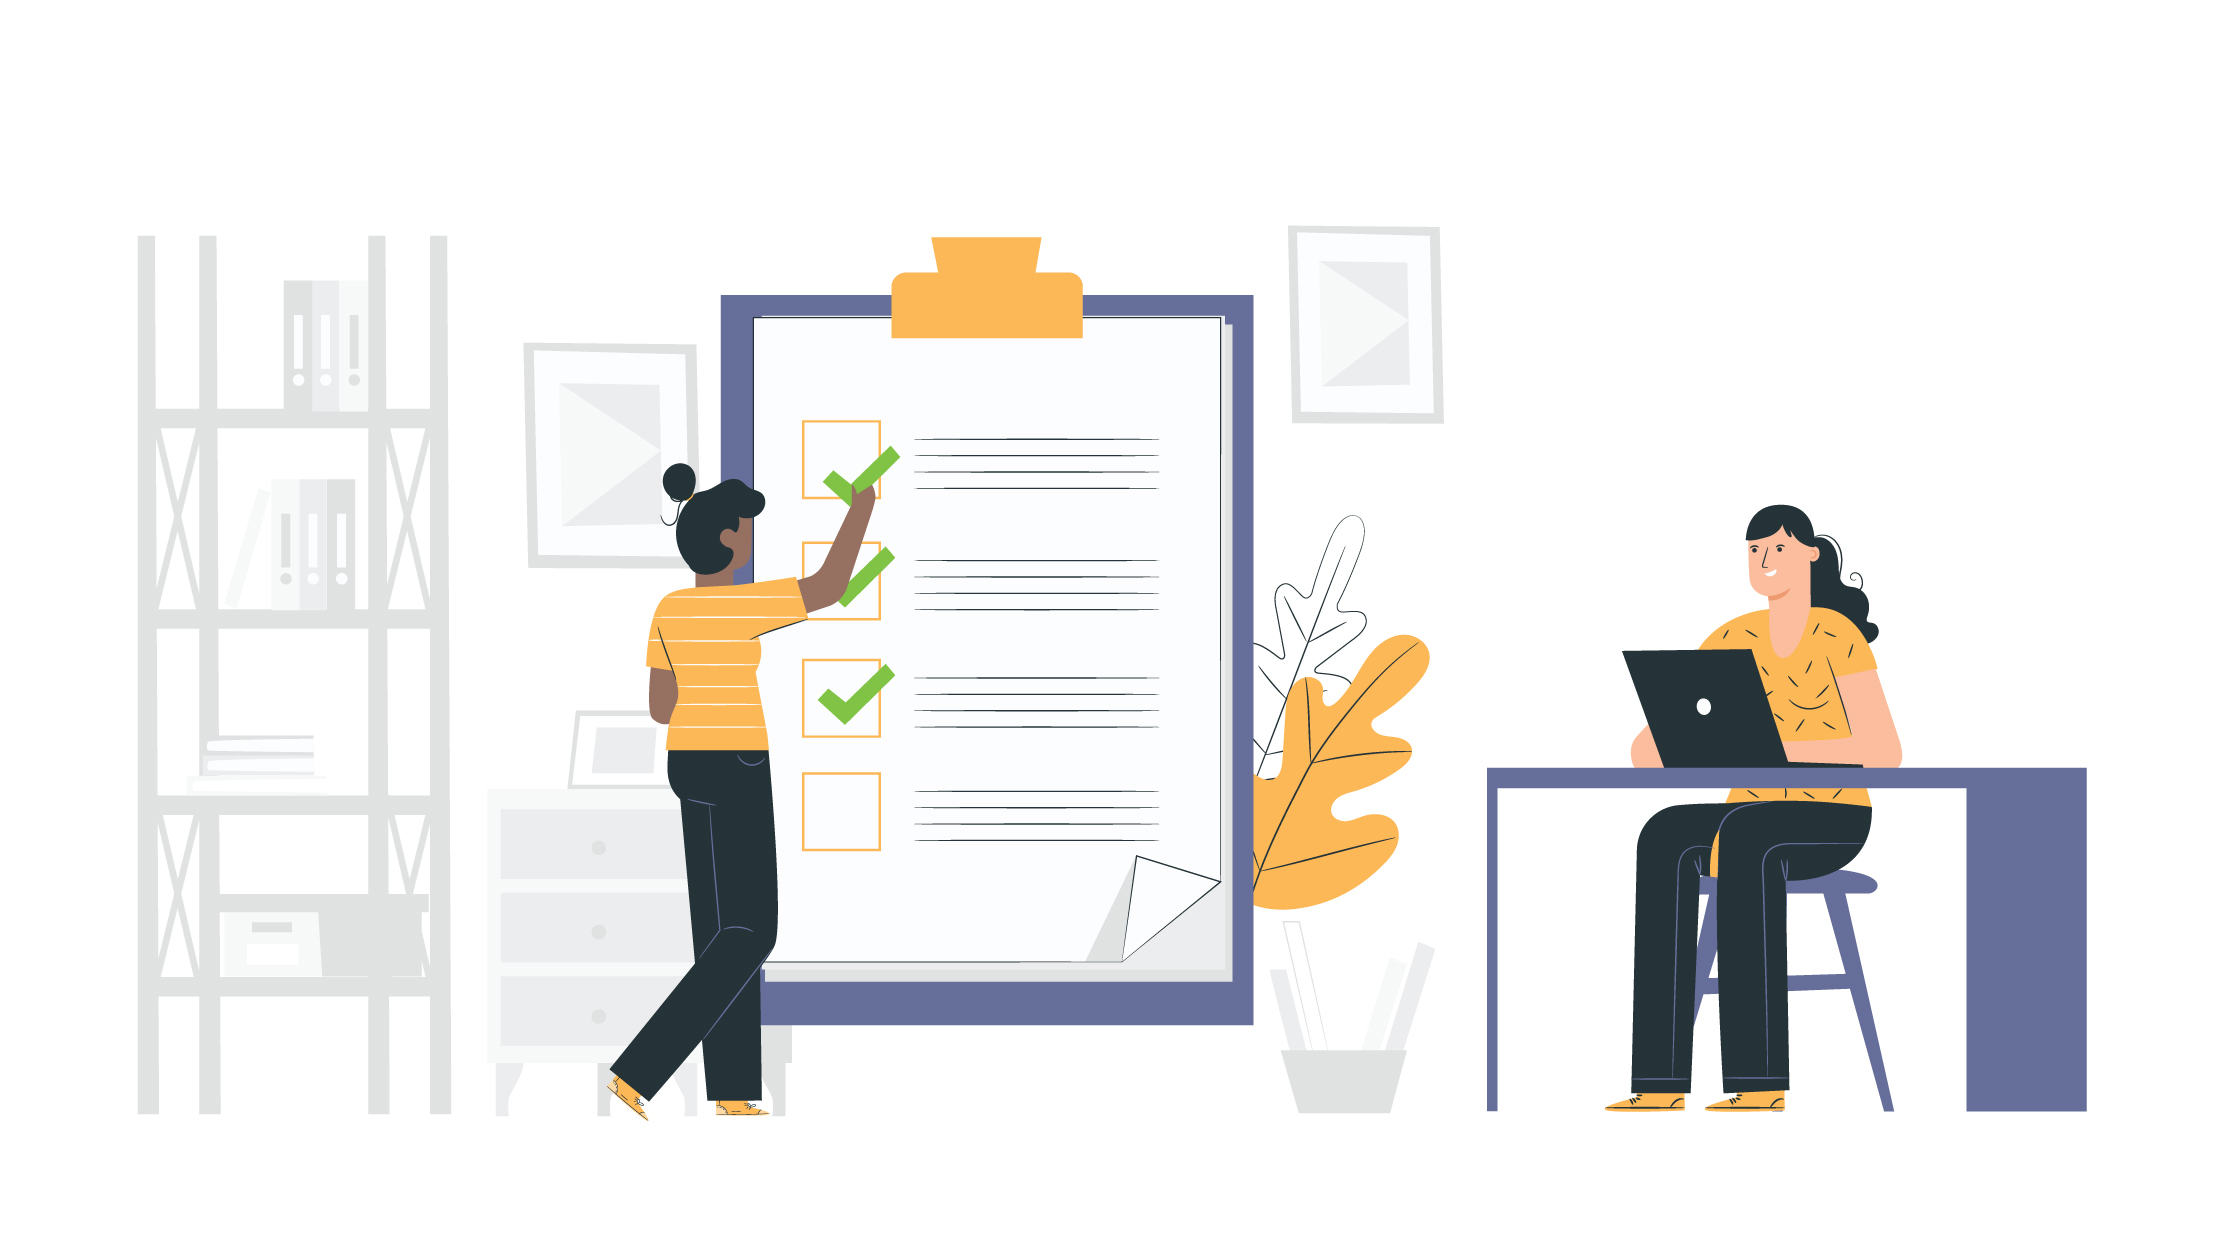 Illustration of two people referencing a product evaluation to check if their service is on the right track.